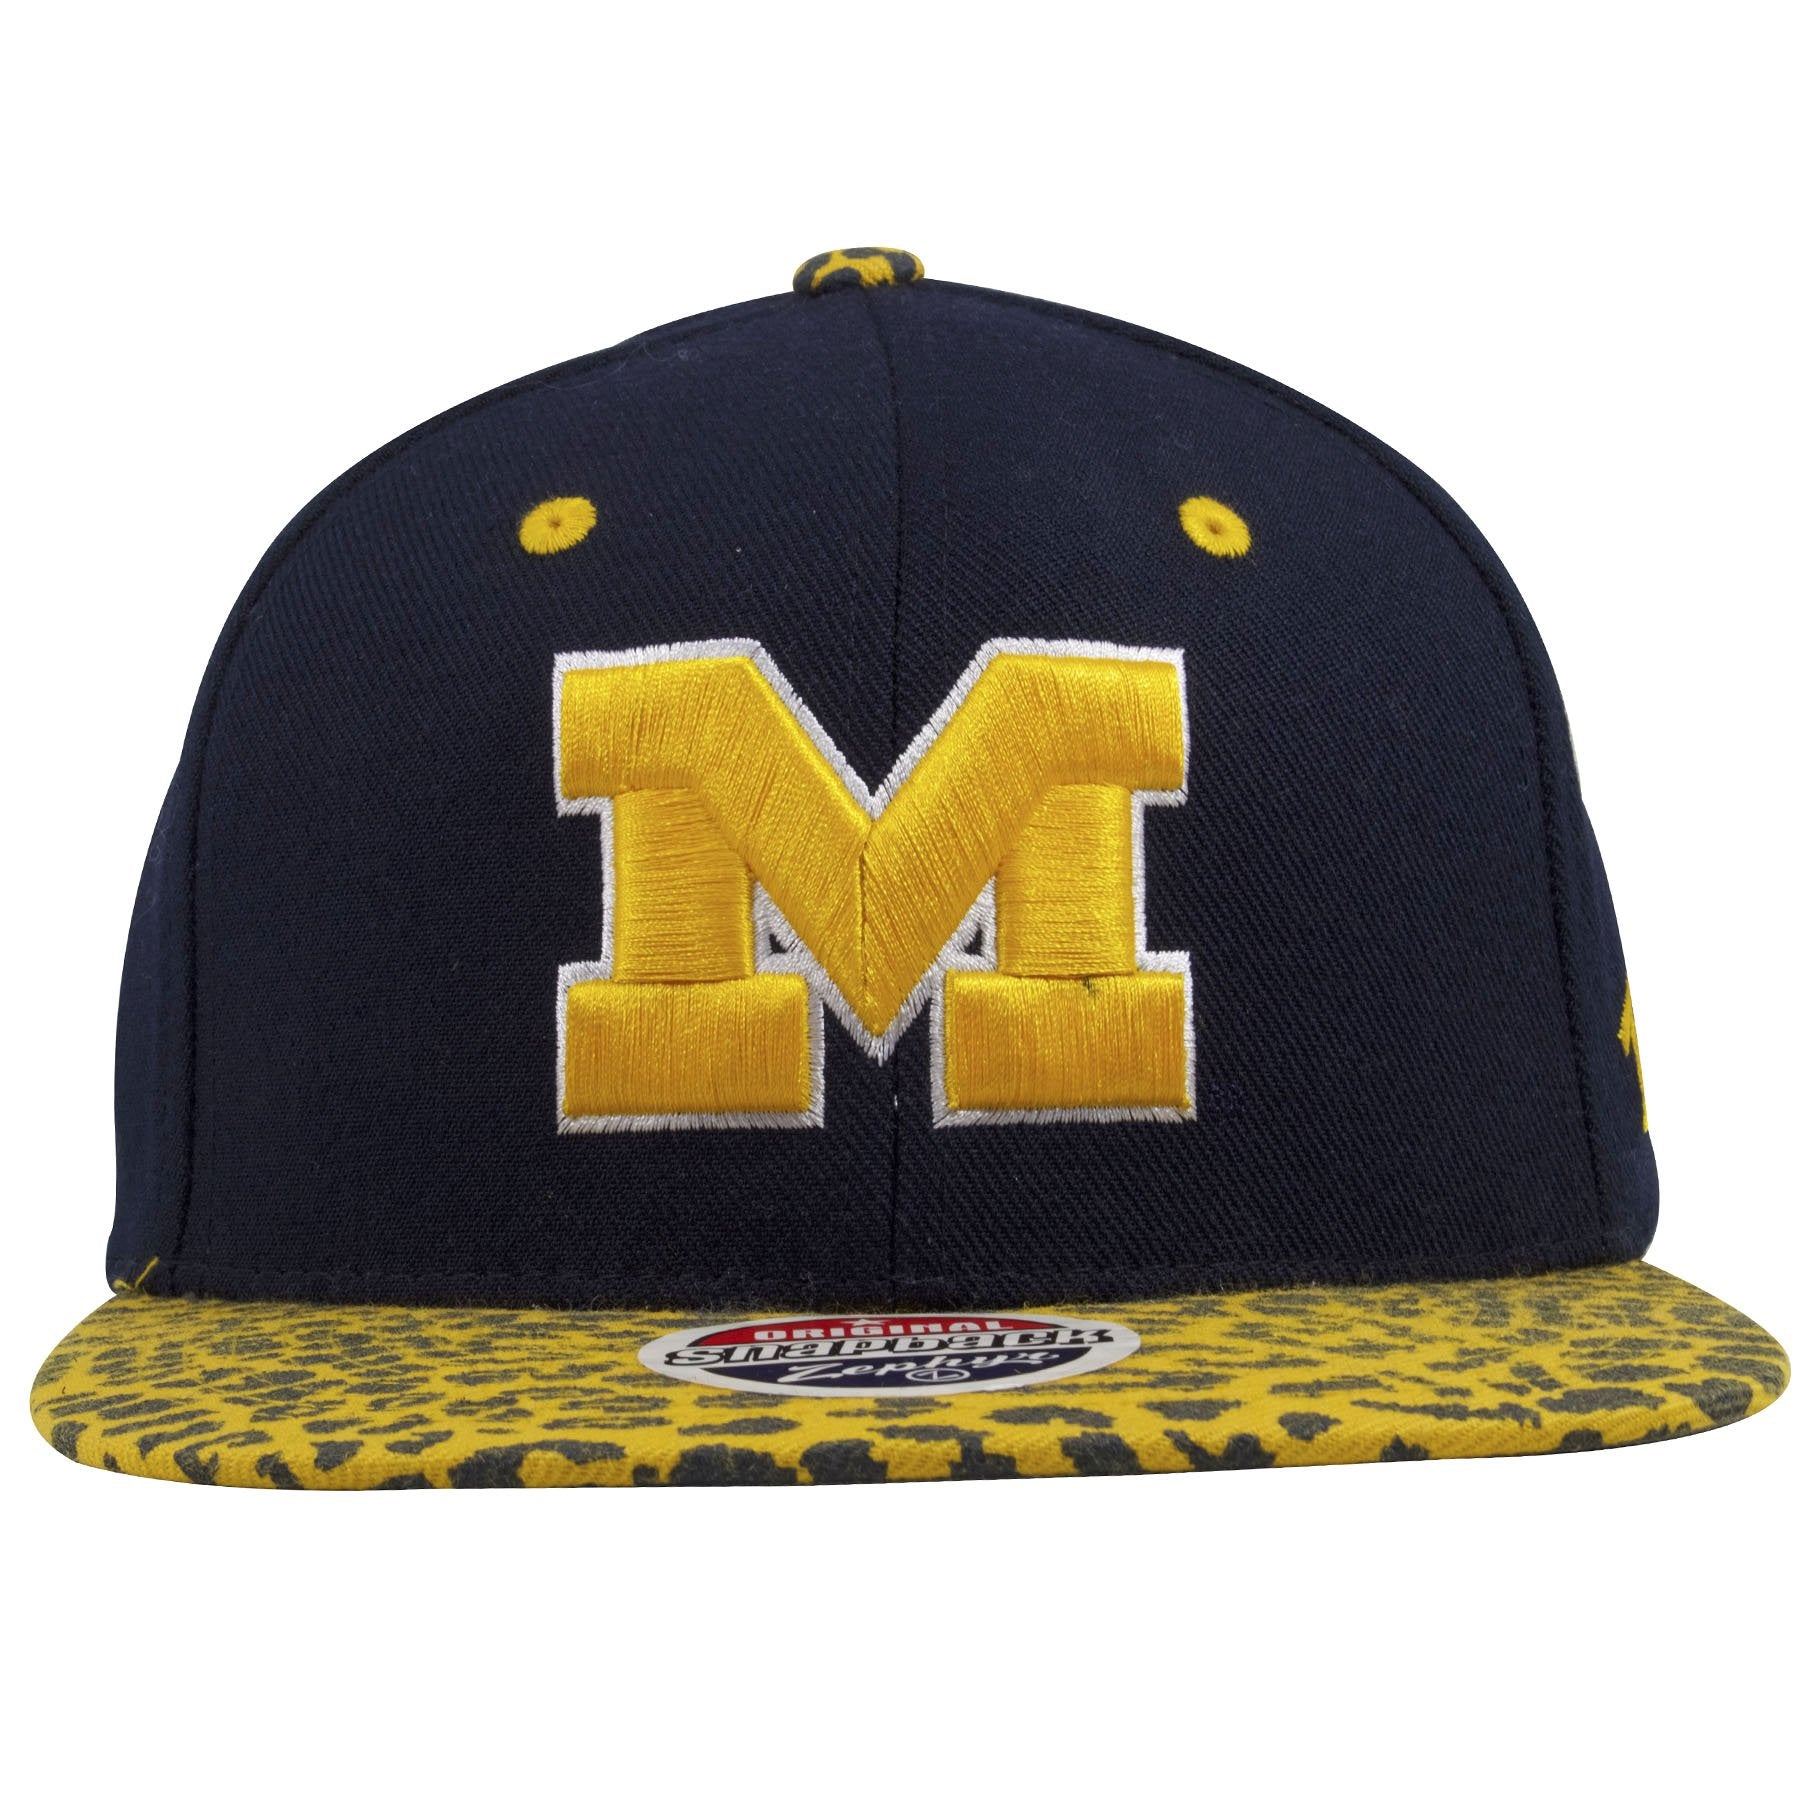 on the front of the university of michigan wolverines snapback hat is the  university of michigan 77c025e2fb2